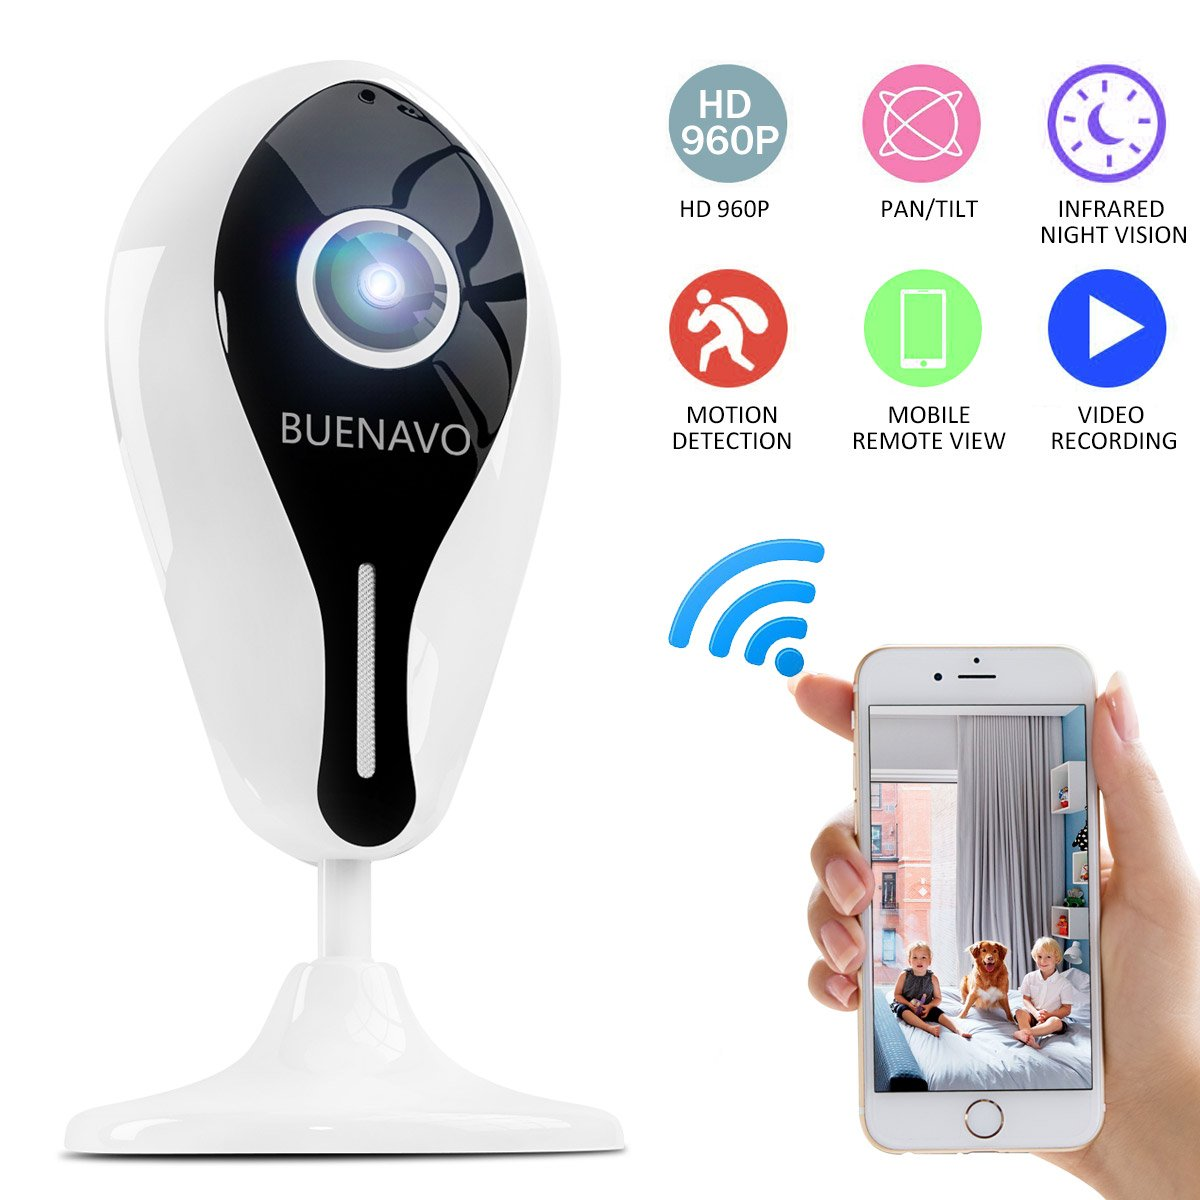 [UPGRADED] BUENAVO 960P Home Security Camera Wireless IP Camera Two-Way Audio Indoor Security Surveillance System with Night Vision and Motion Detection for Baby, Pet Monitor